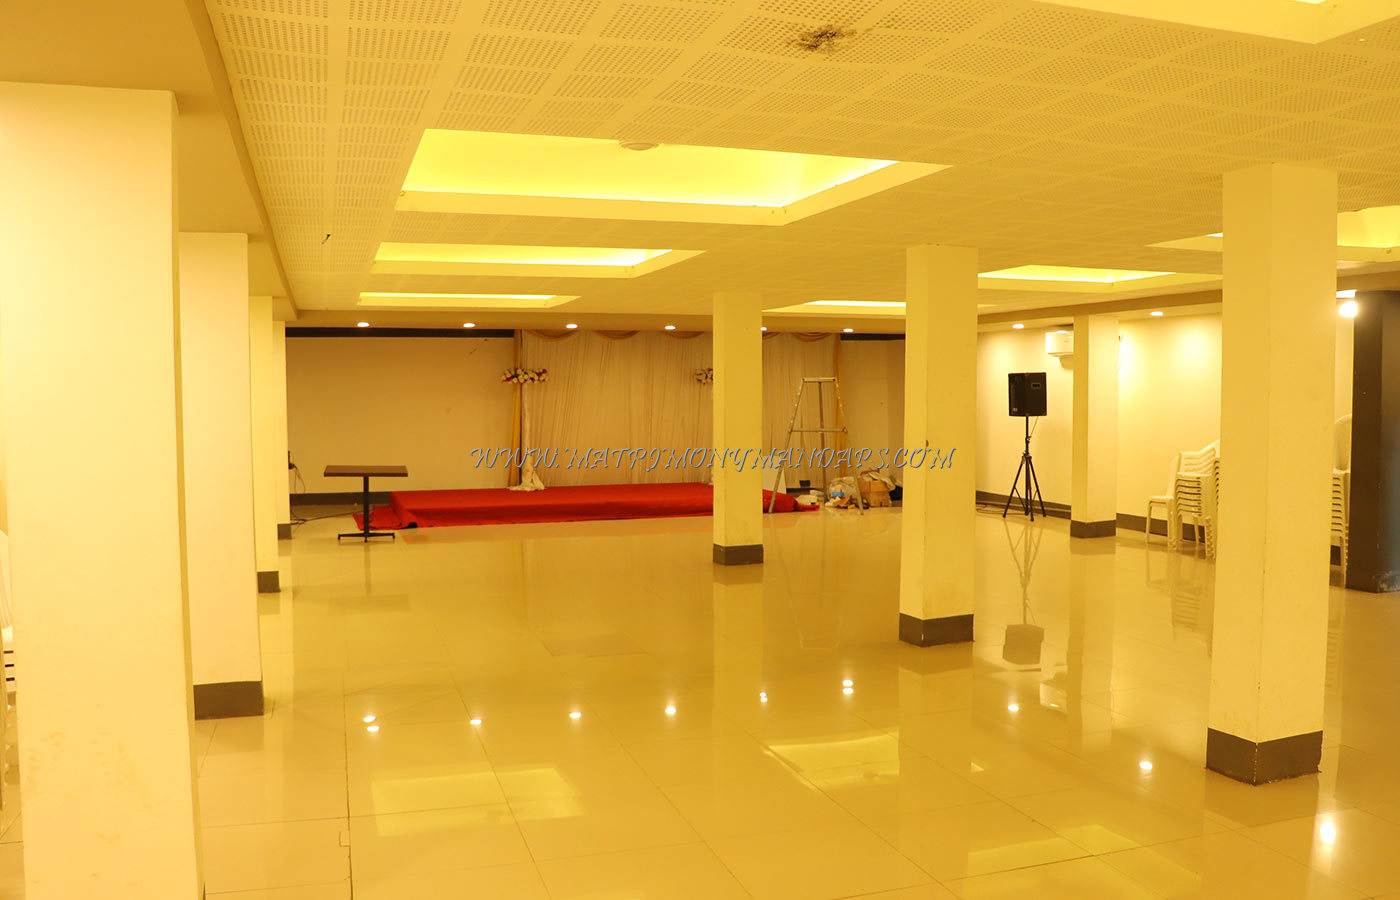 Find More Banquet Halls in Perumbavoor